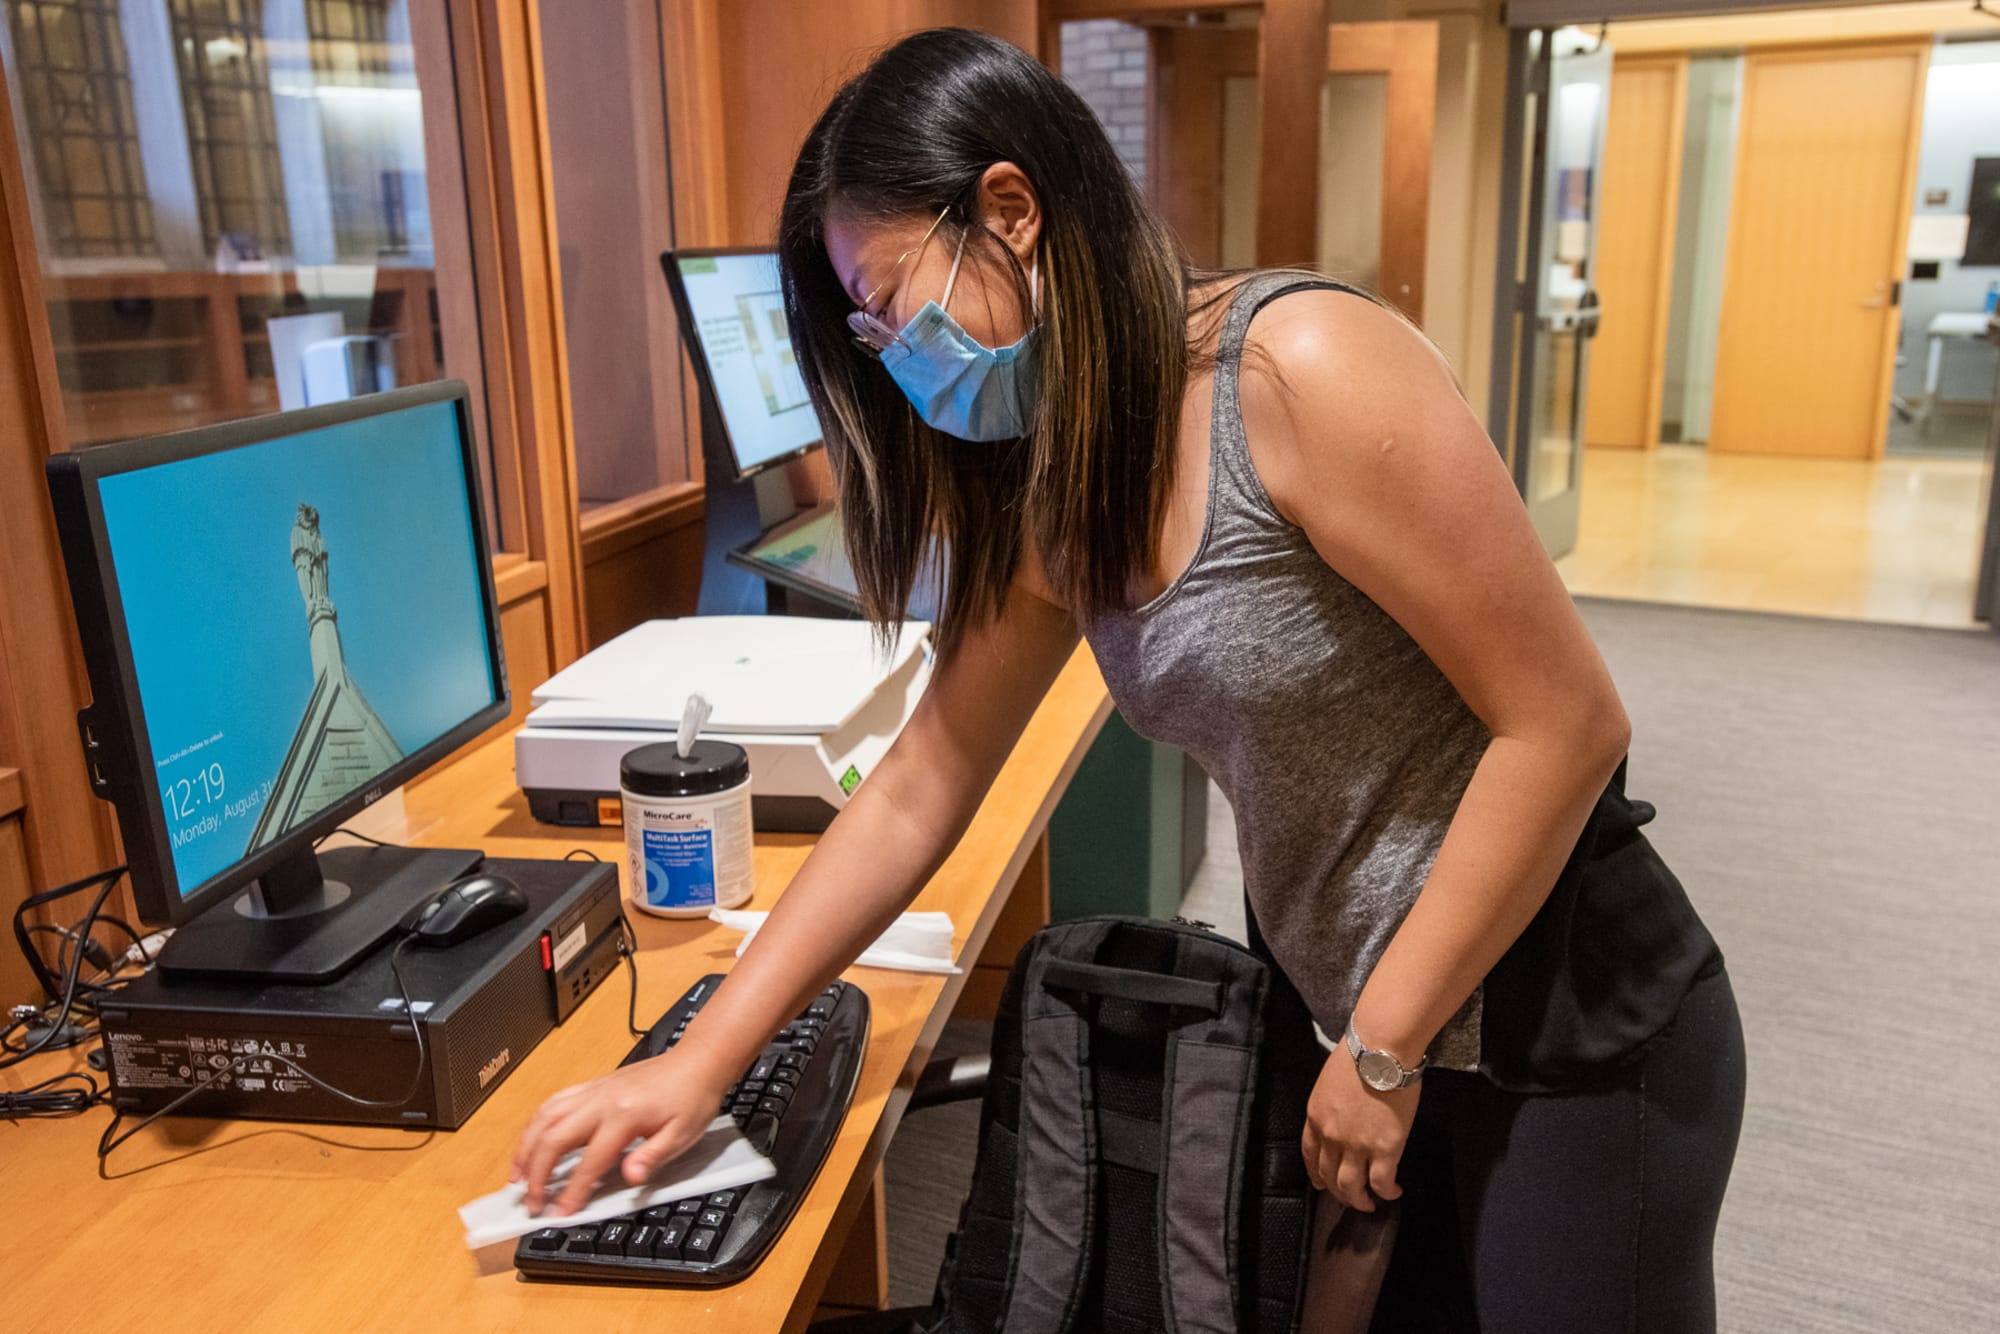 Woman cleans computer keyboard with wipes in Bass Library. Photo by Mara Lavitt